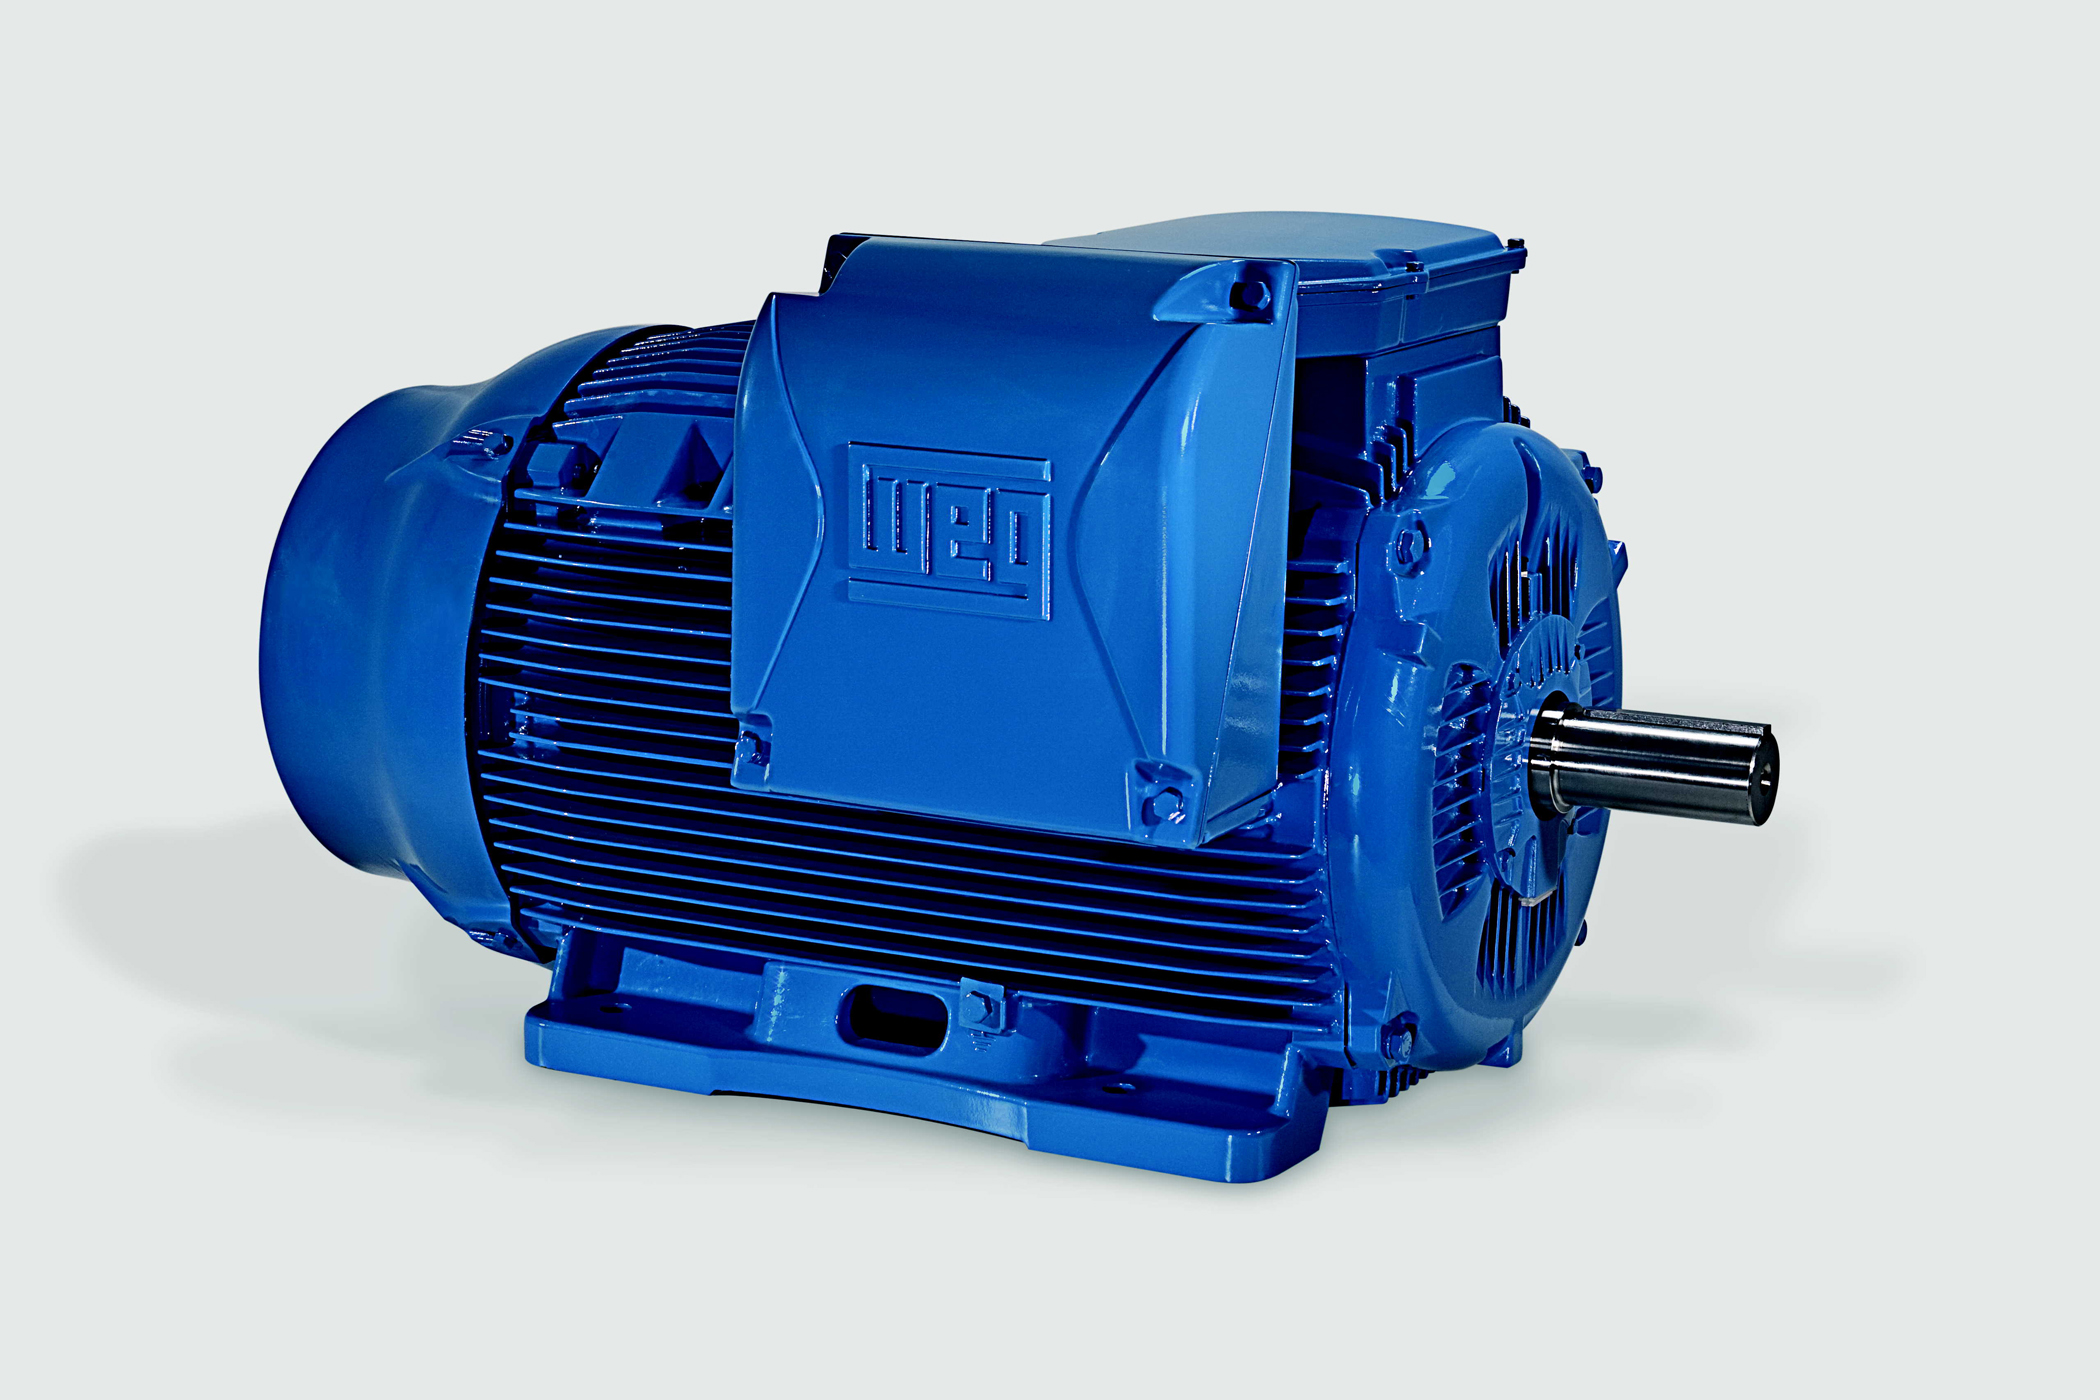 Weg w22 high efficiency motors chosen for driving pumps High efficiency motors